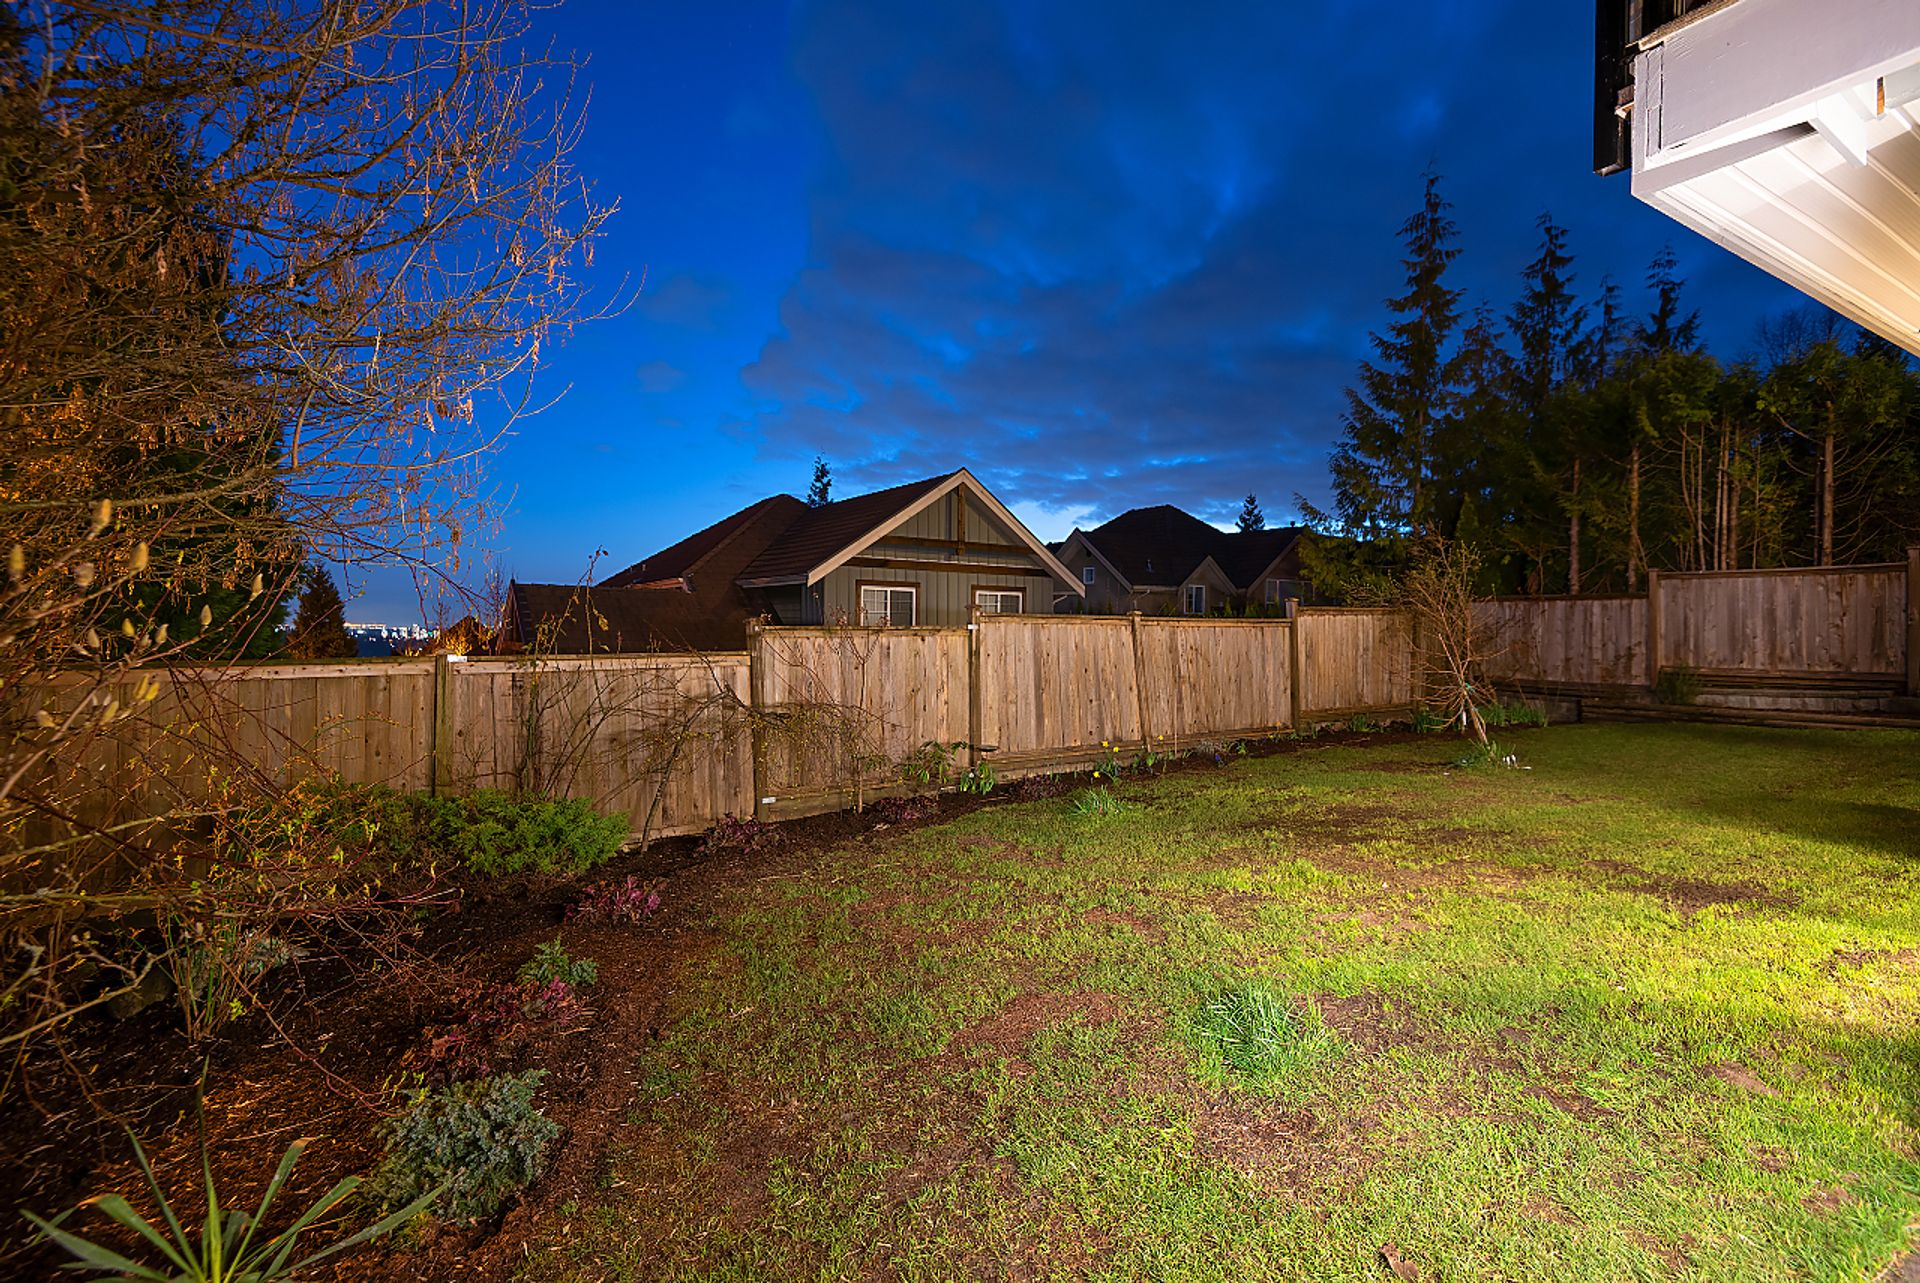 108 at 3 Fernway Drive, Heritage Woods PM, Port Moody